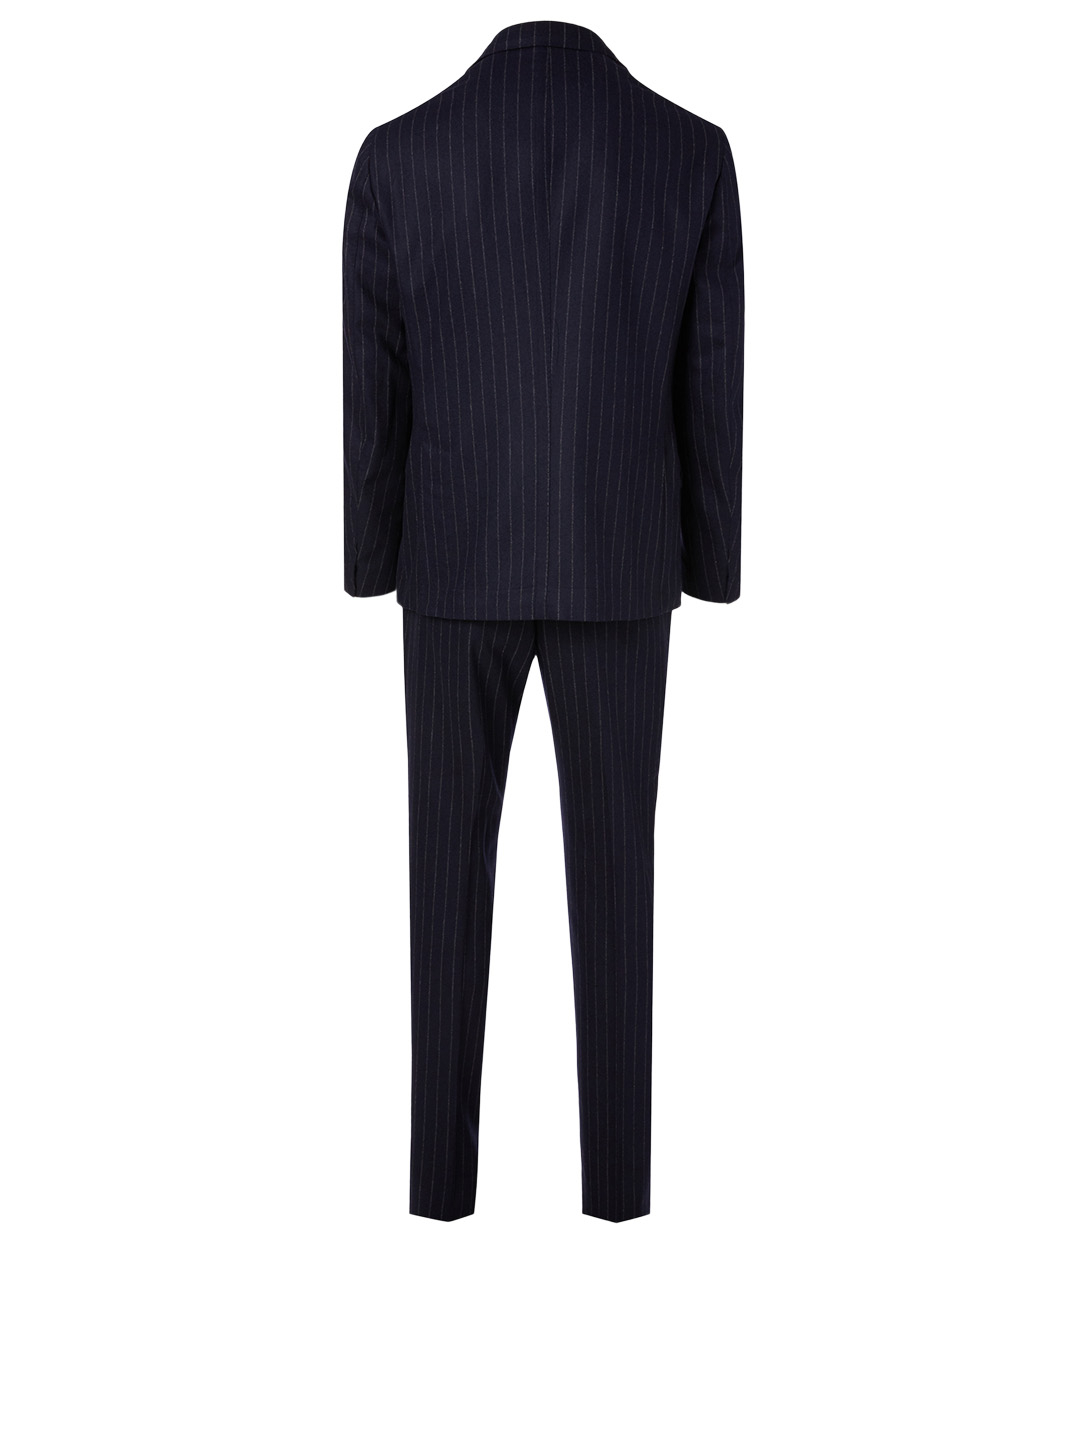 ELEVENTY Wool And Cashmere Two-Piece Suit In Pinstripe Print Men's Blue